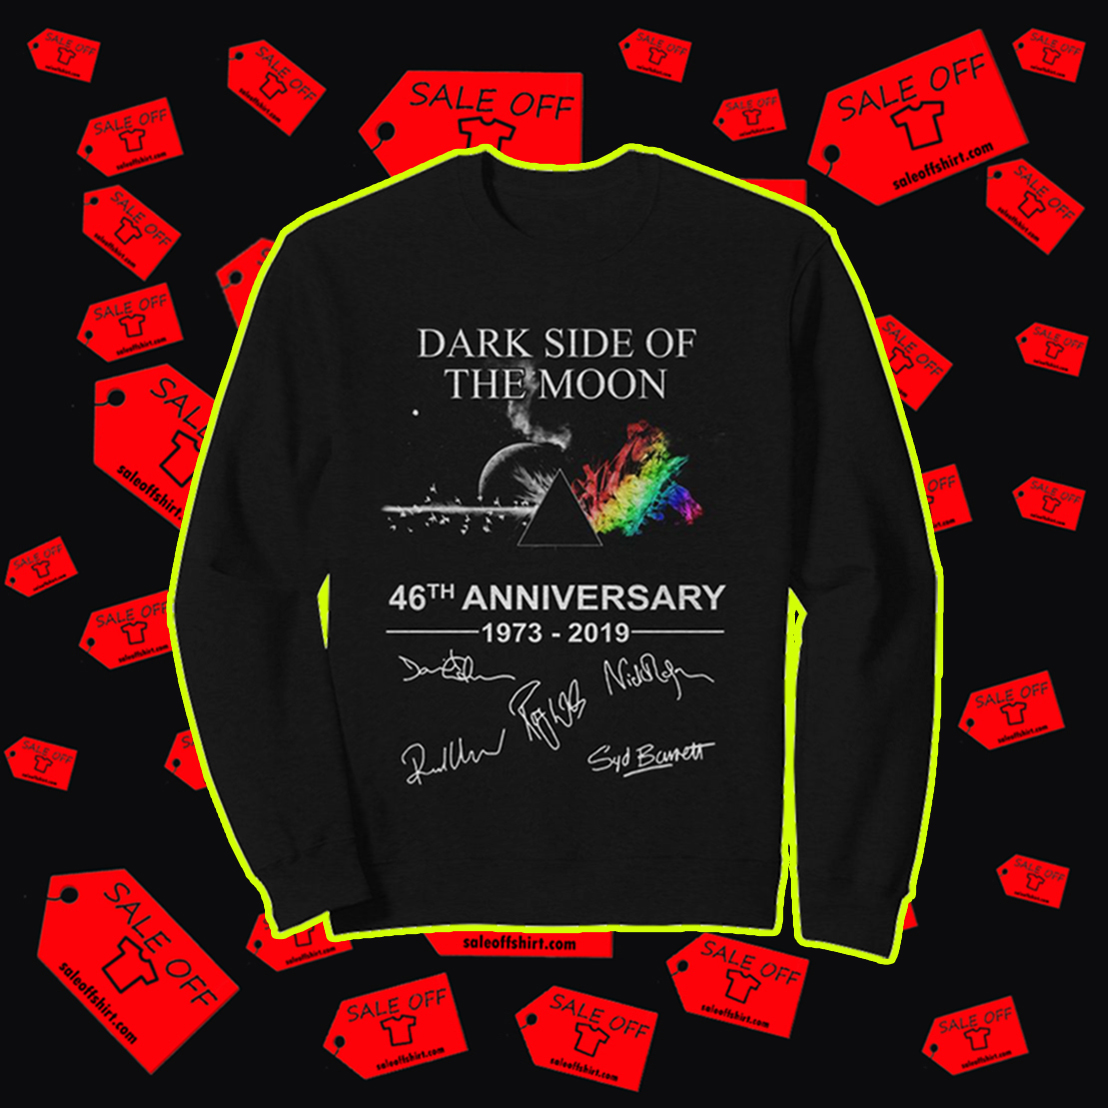 Dark side of the moon 46th anniversary sweatshirt